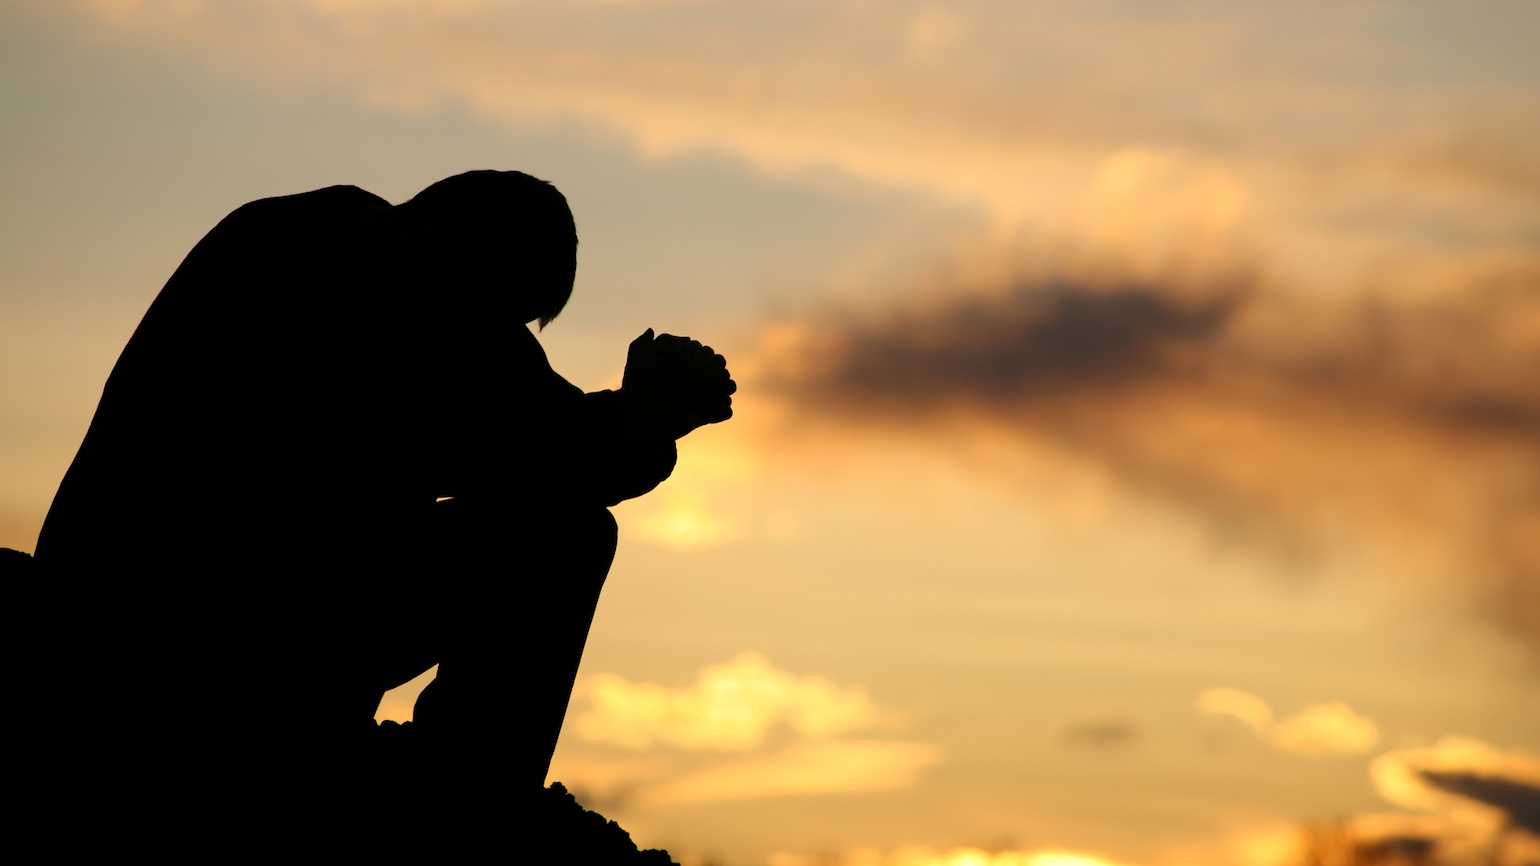 10 Scripture Prayers for Safety and Protection